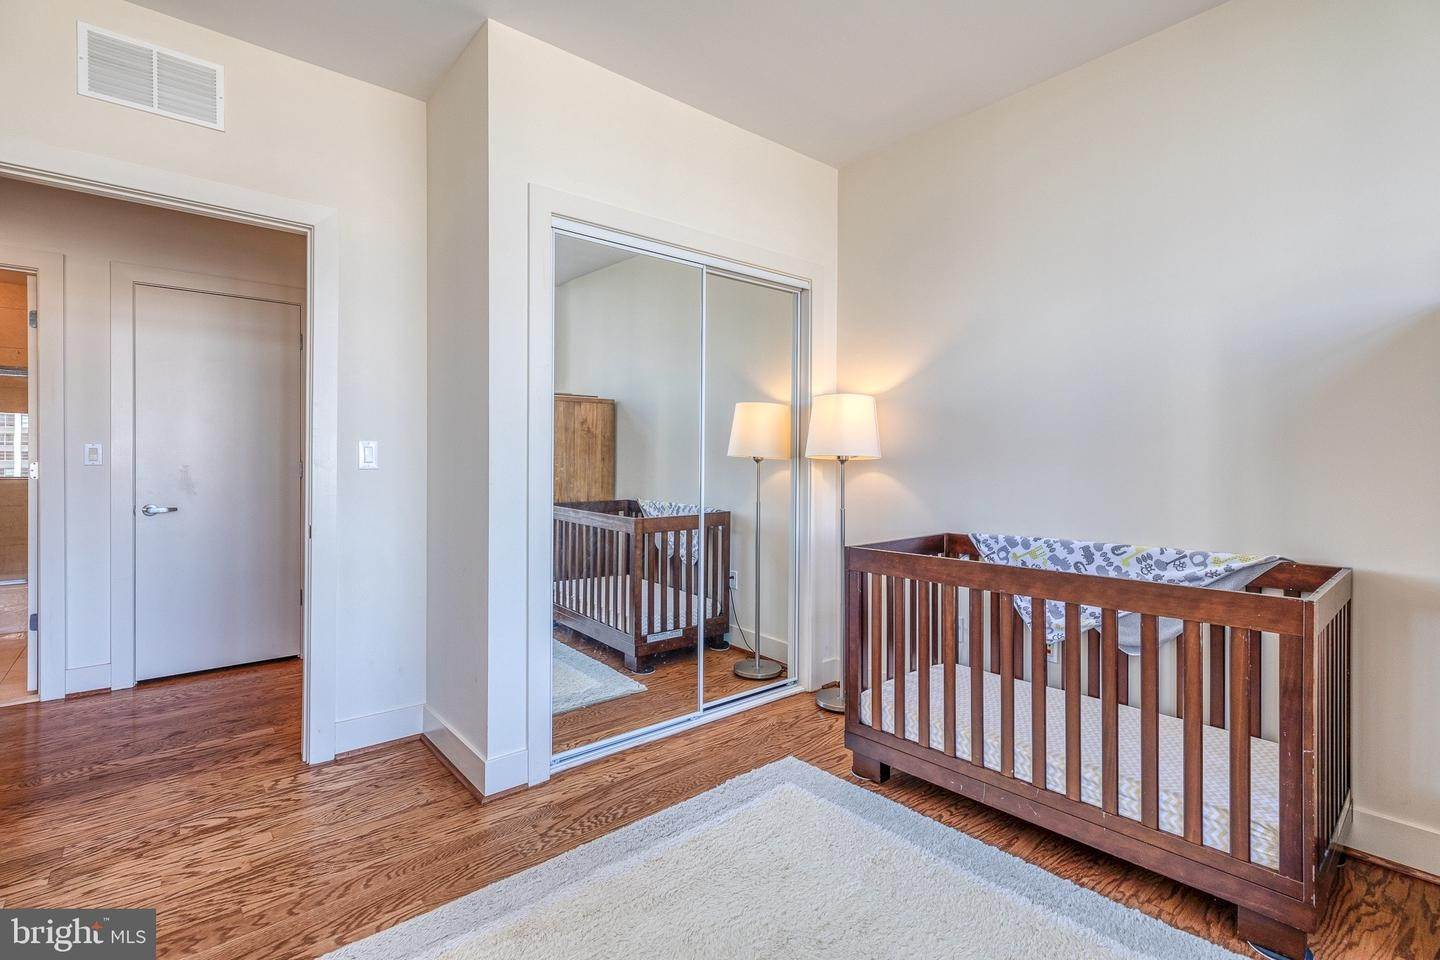 20. Apartments for Sale at 23 S 23RD ST #5B Philadelphia, Pennsylvania 19103 United States